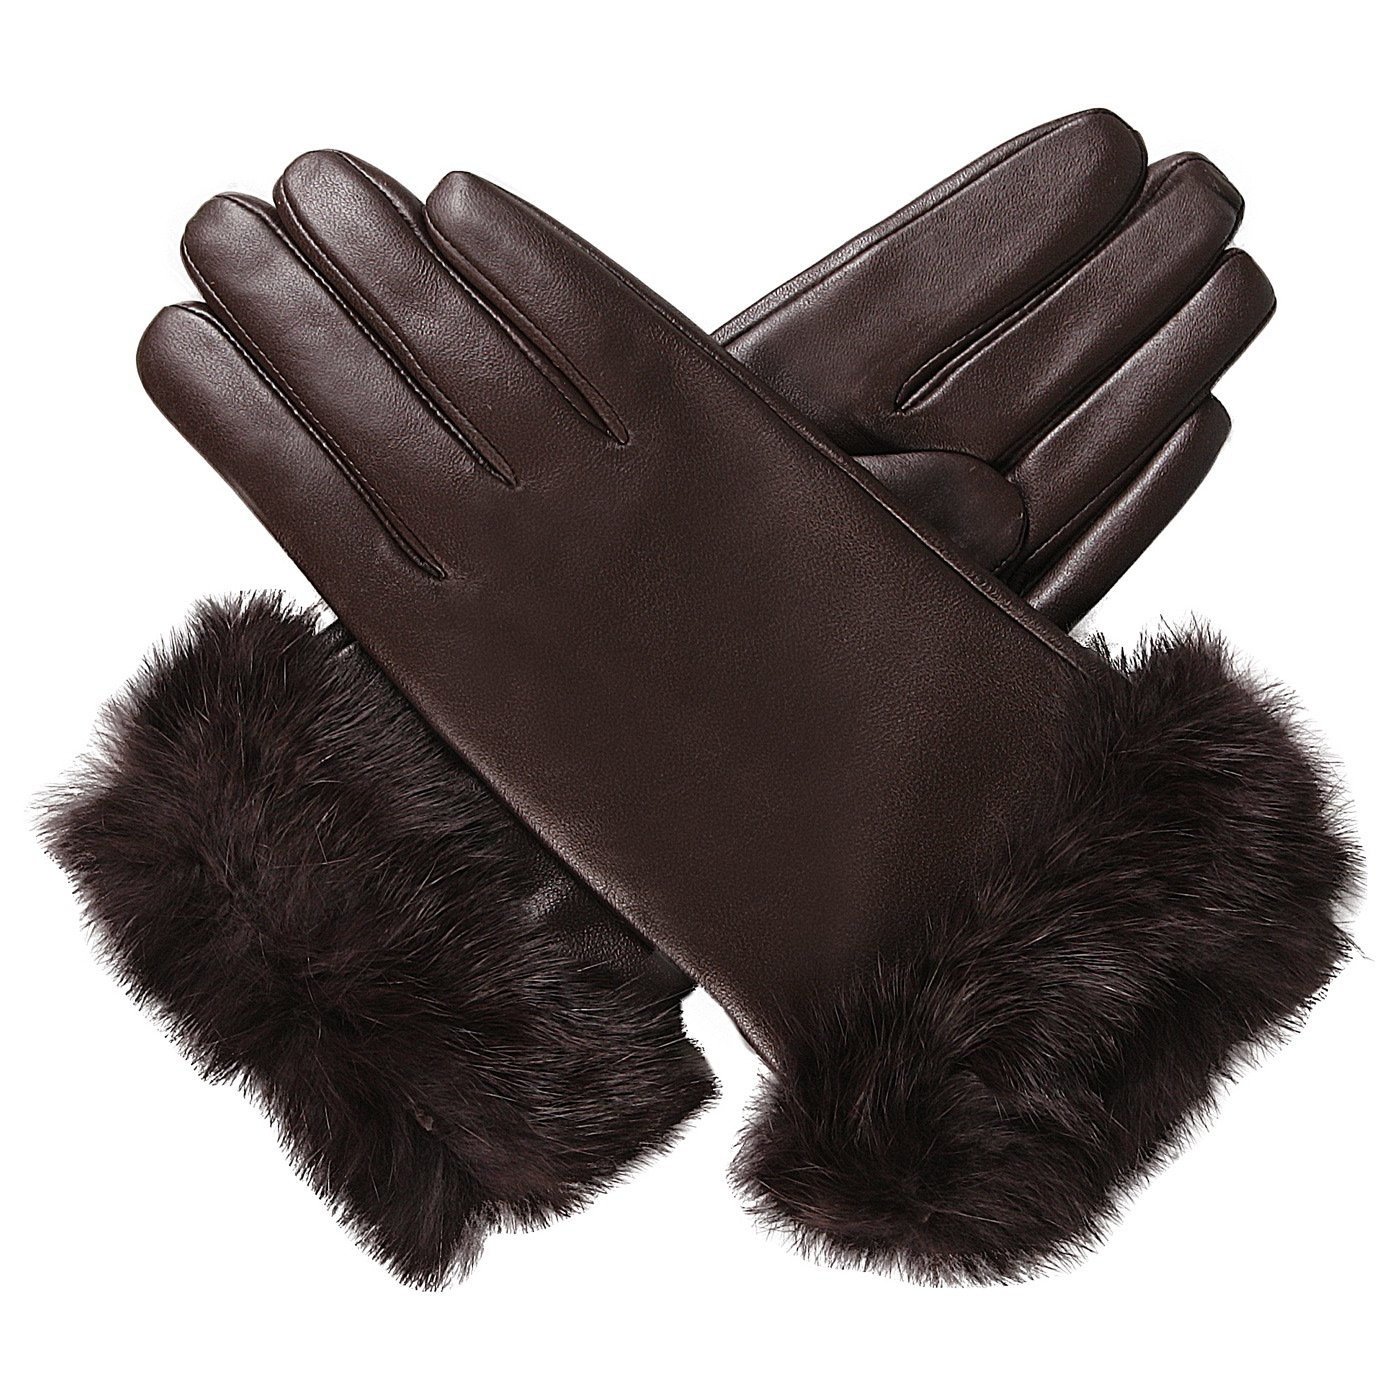 Luxury Lane Women's Rabbit Fur Cuff Cashmere Lined Lambskin Leather Gloves - Chocolate Medium by Luxury Lane (Image #2)